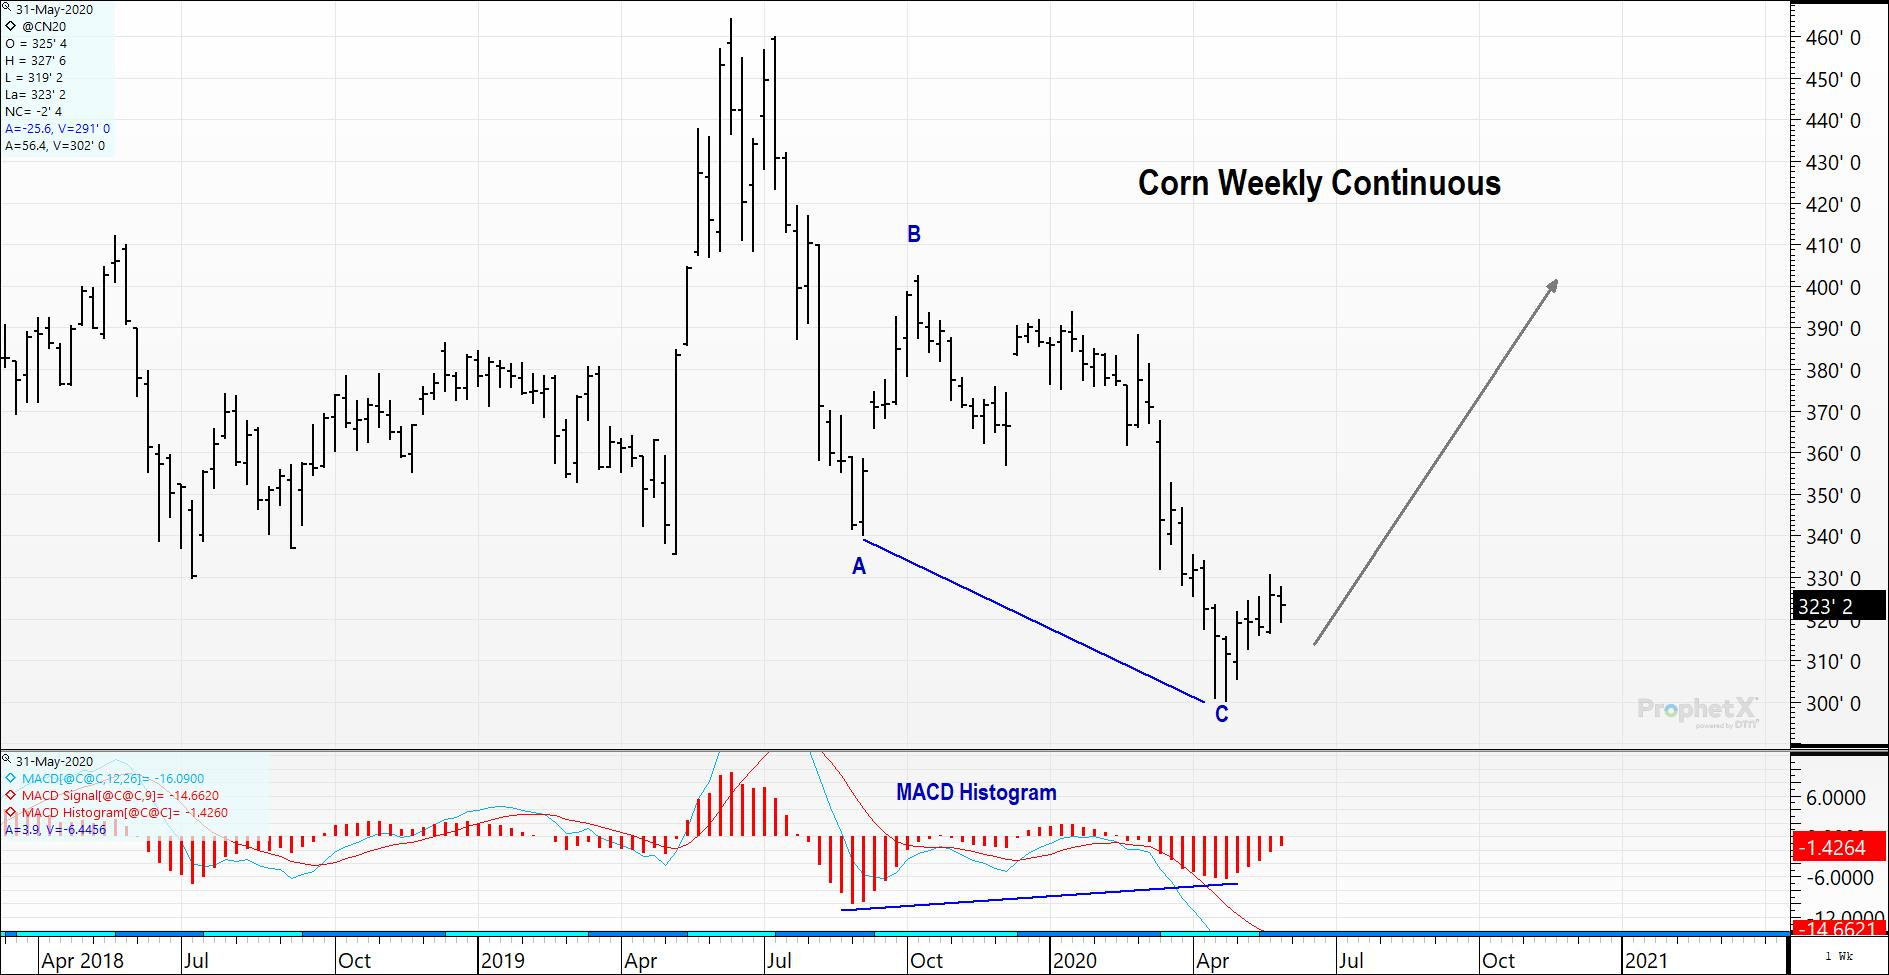 Weekly Continuous Corn Futures